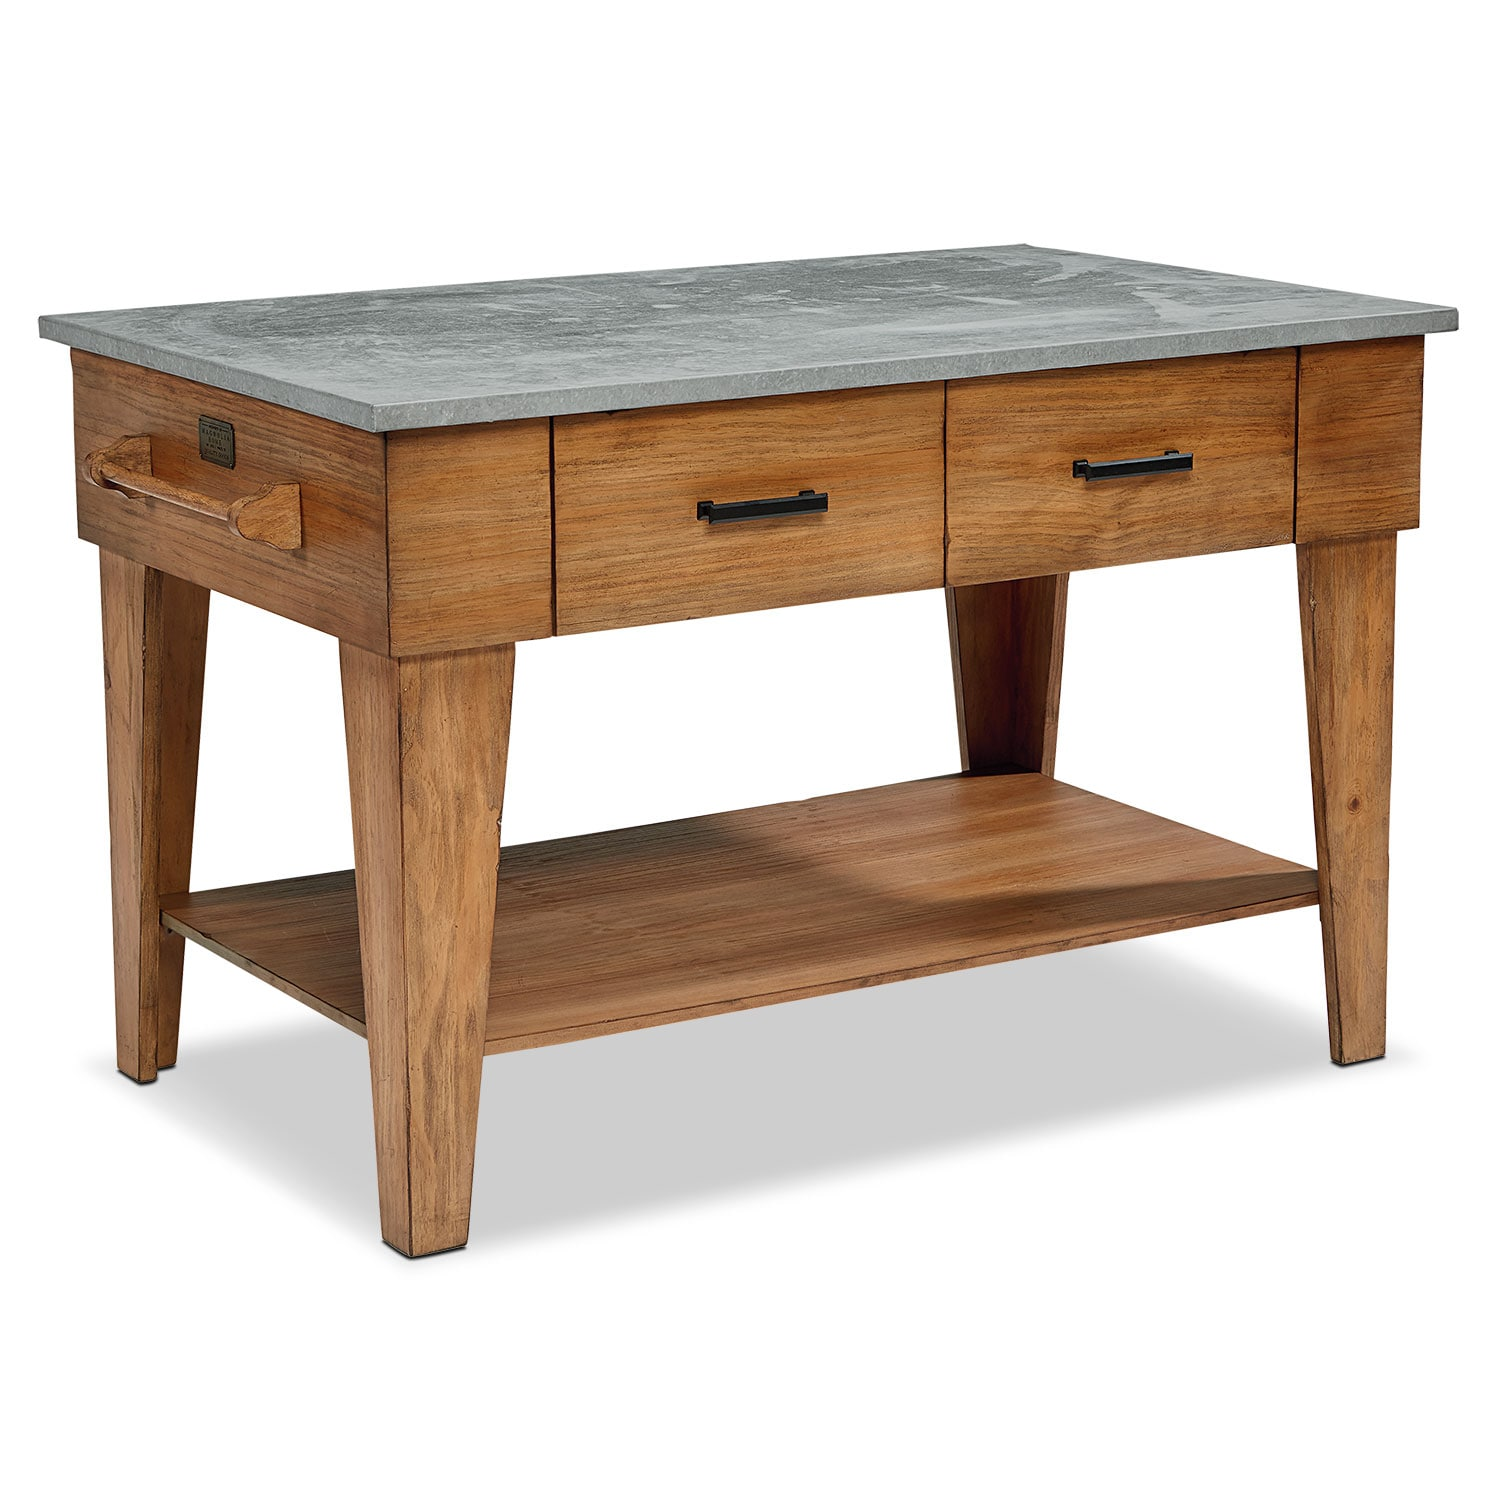 Accent and Occasional Furniture - Farmhouse Kitchen Island - Bench